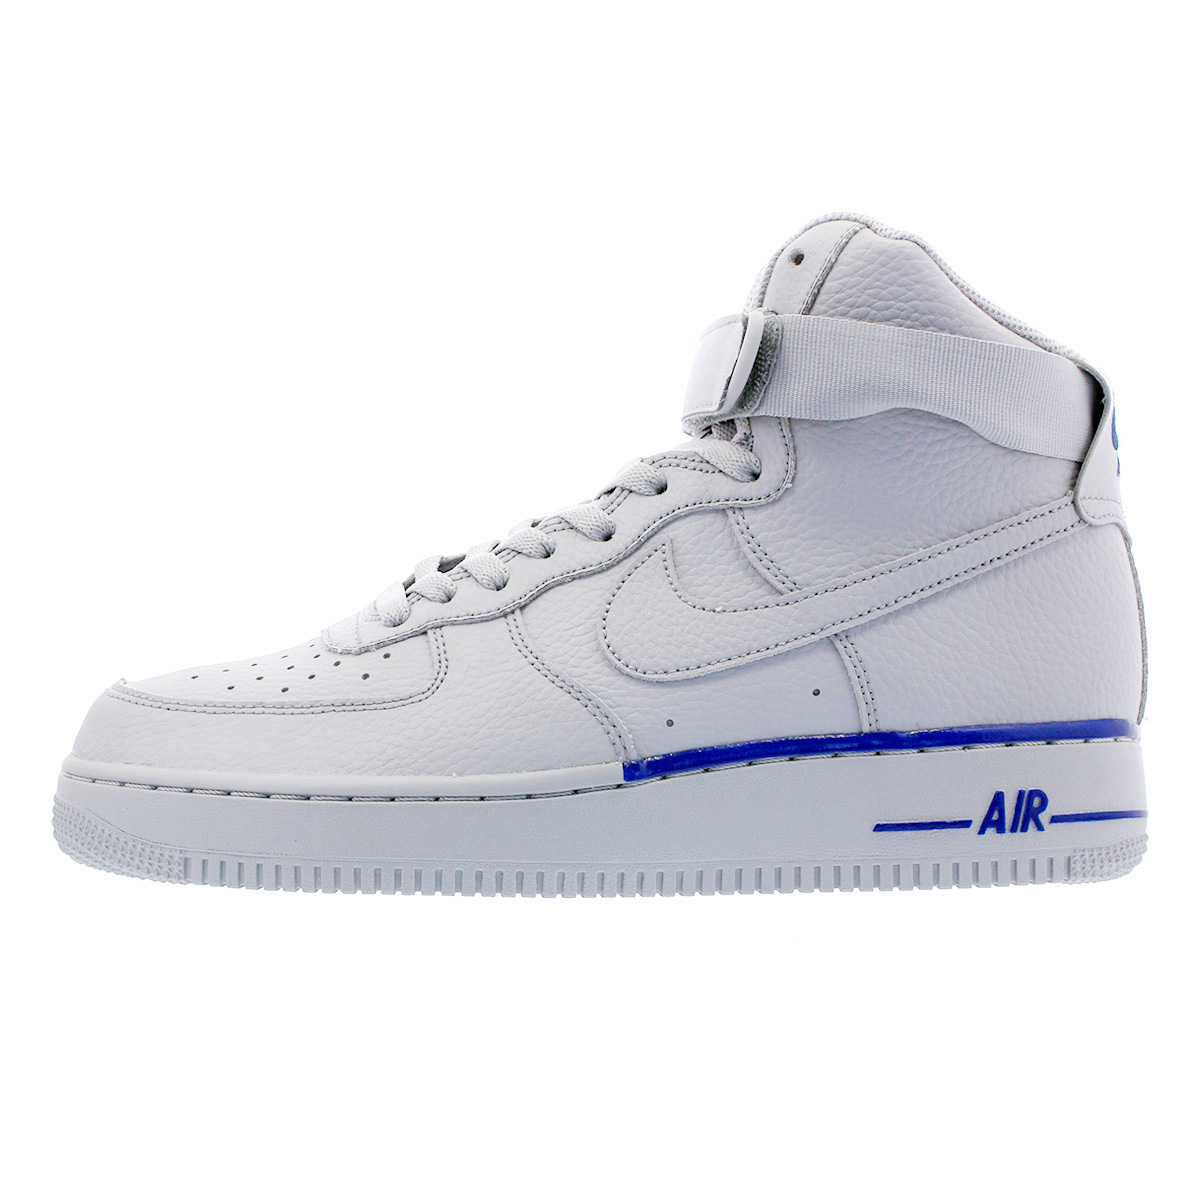 buy popular ca4f9 8da59 NIKE AIR FORCE 1 HIGH 07 Nike air force 1 high 07 WOLF GREY DEEP ROYAL  315,121-045